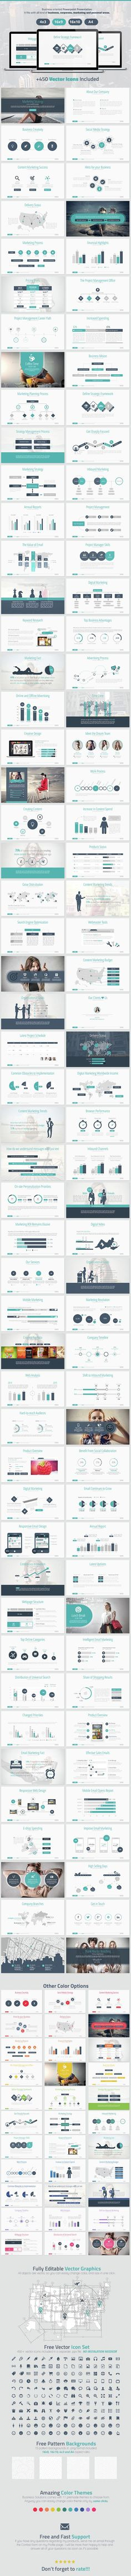 Marketing Strategy Powerpoint Presentation Template #slides Download here…